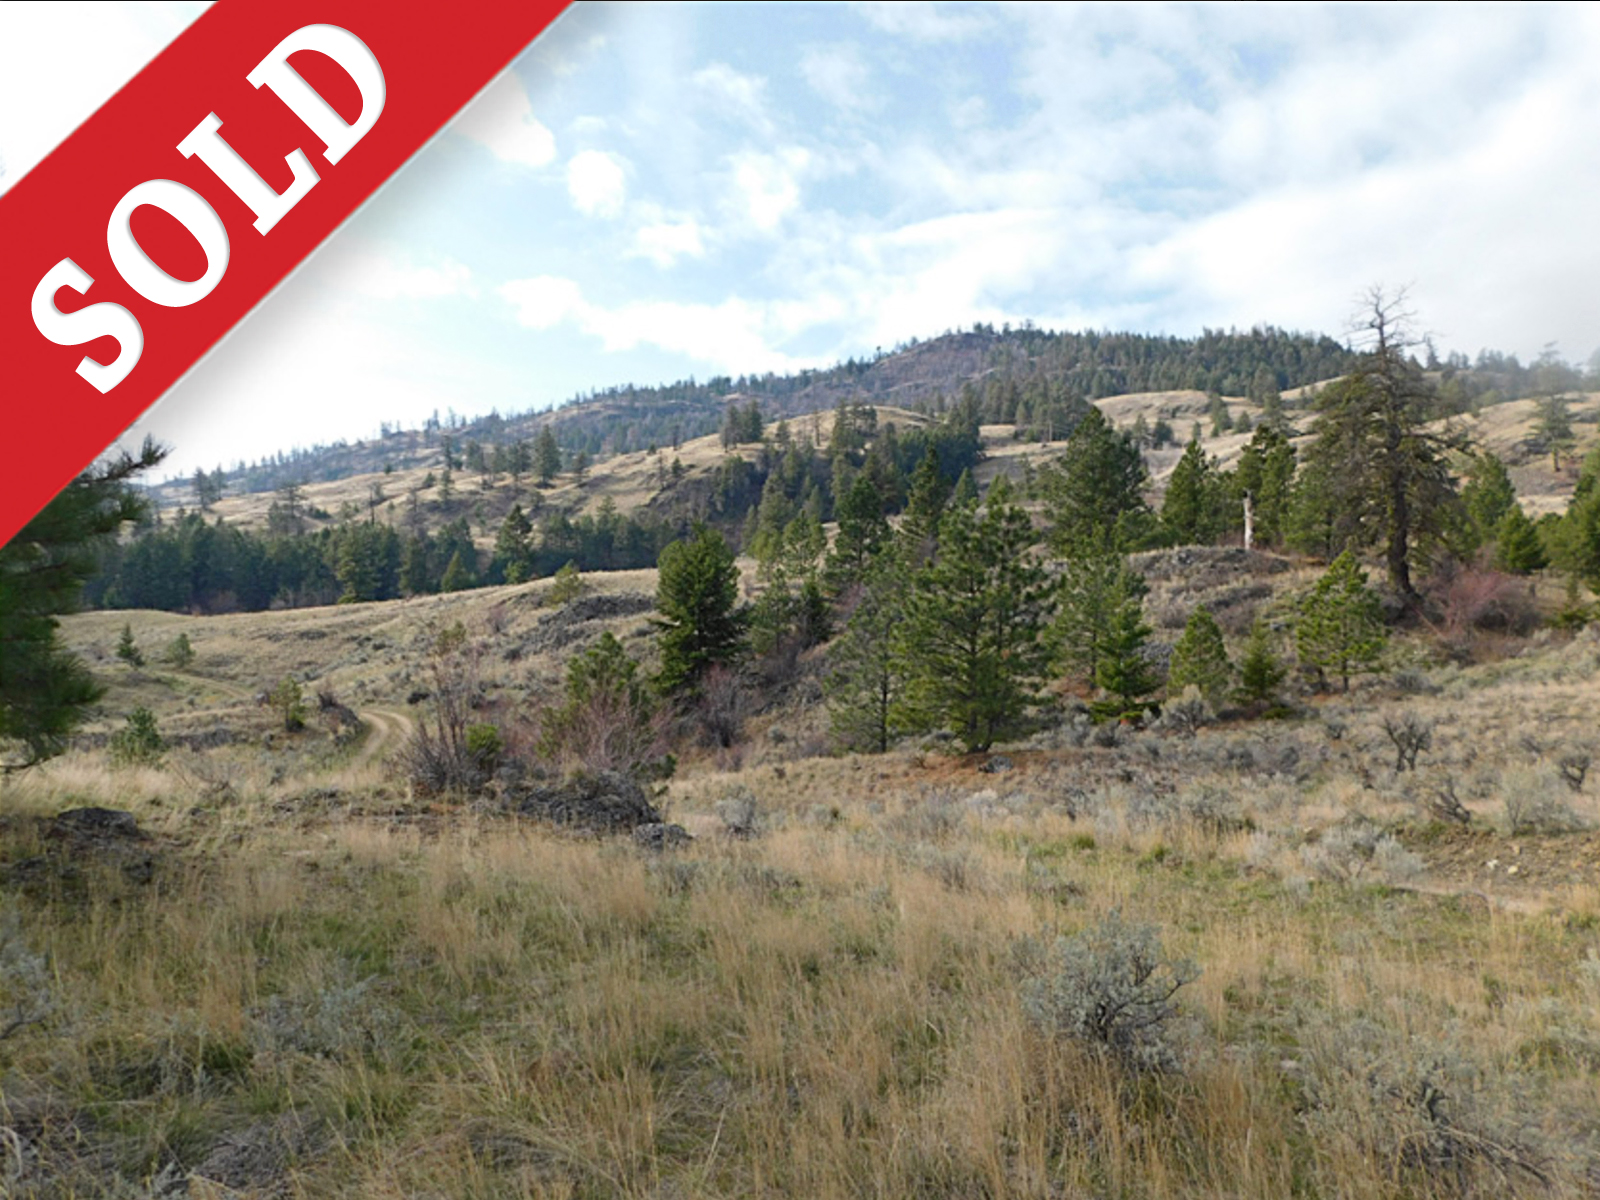 SOLD 4764 Wildrose Street > Oliver, BC  | 228 Acres | Ranch House | Commercial Potential for Vineyard Estate!